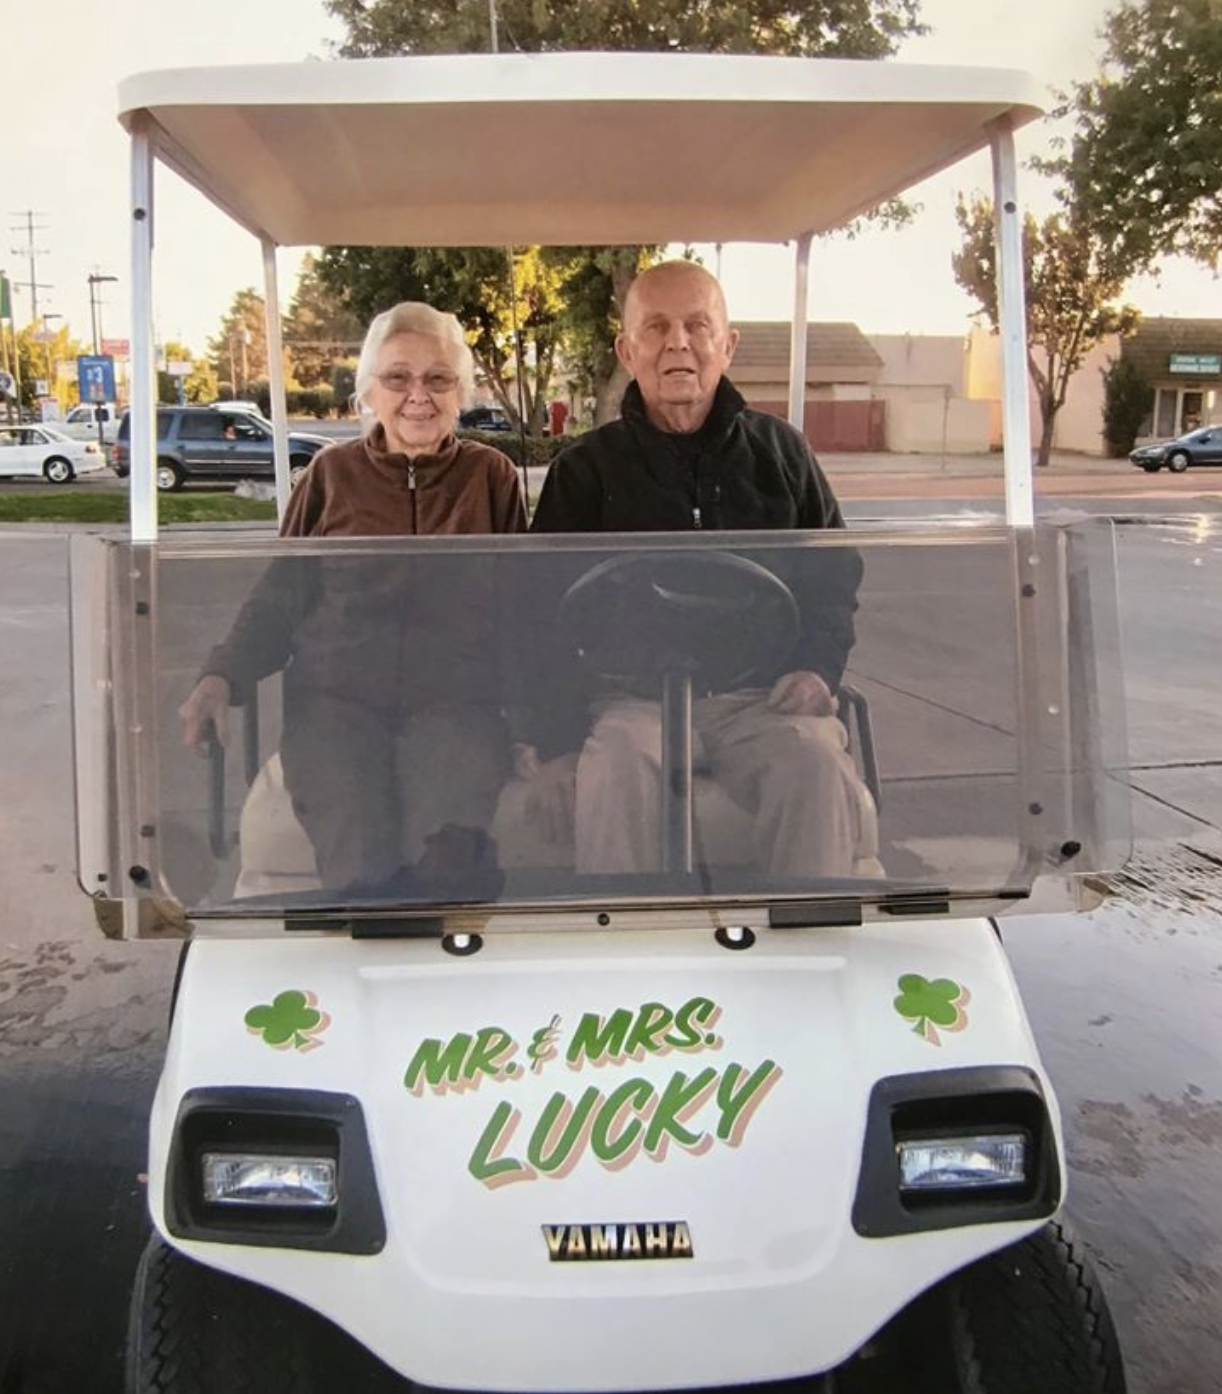 Charles Fenley and wife Ann in their golf cart, 2014. Mr. Fenley and his wife celebrated 70 amazing years of marriage!